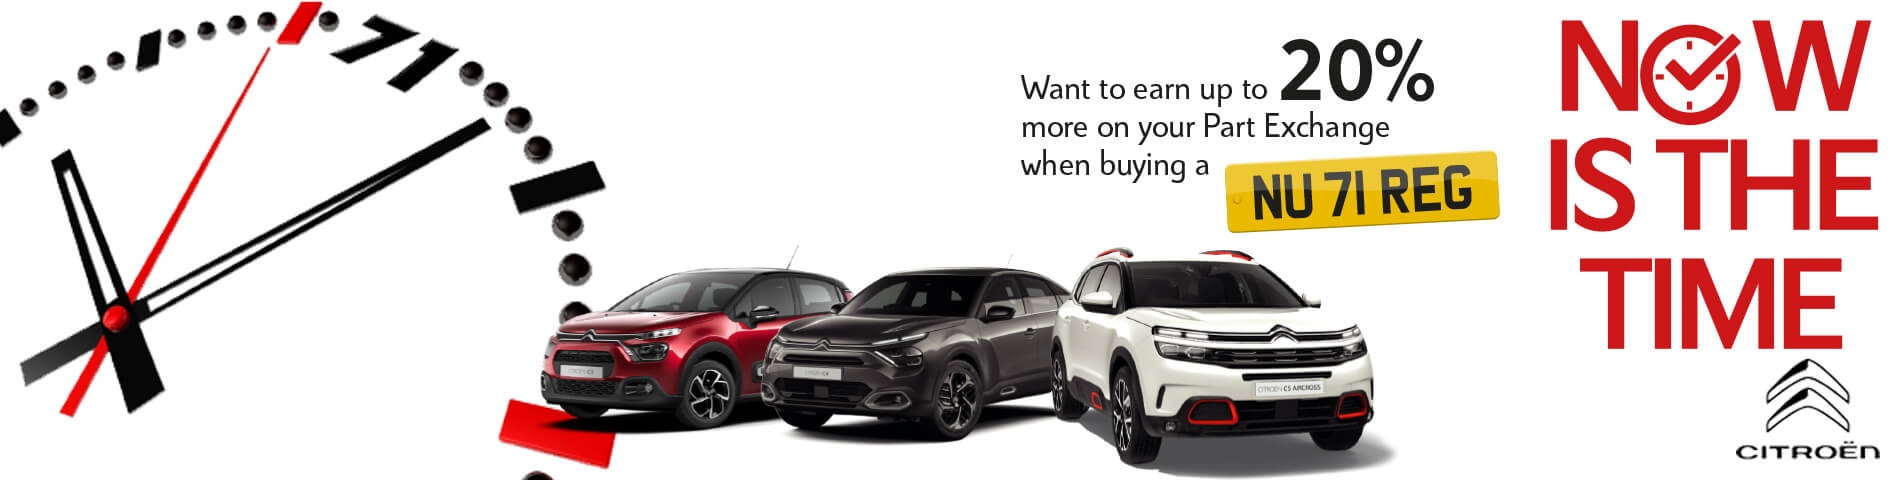 Howards Citroen Now is the Time Event